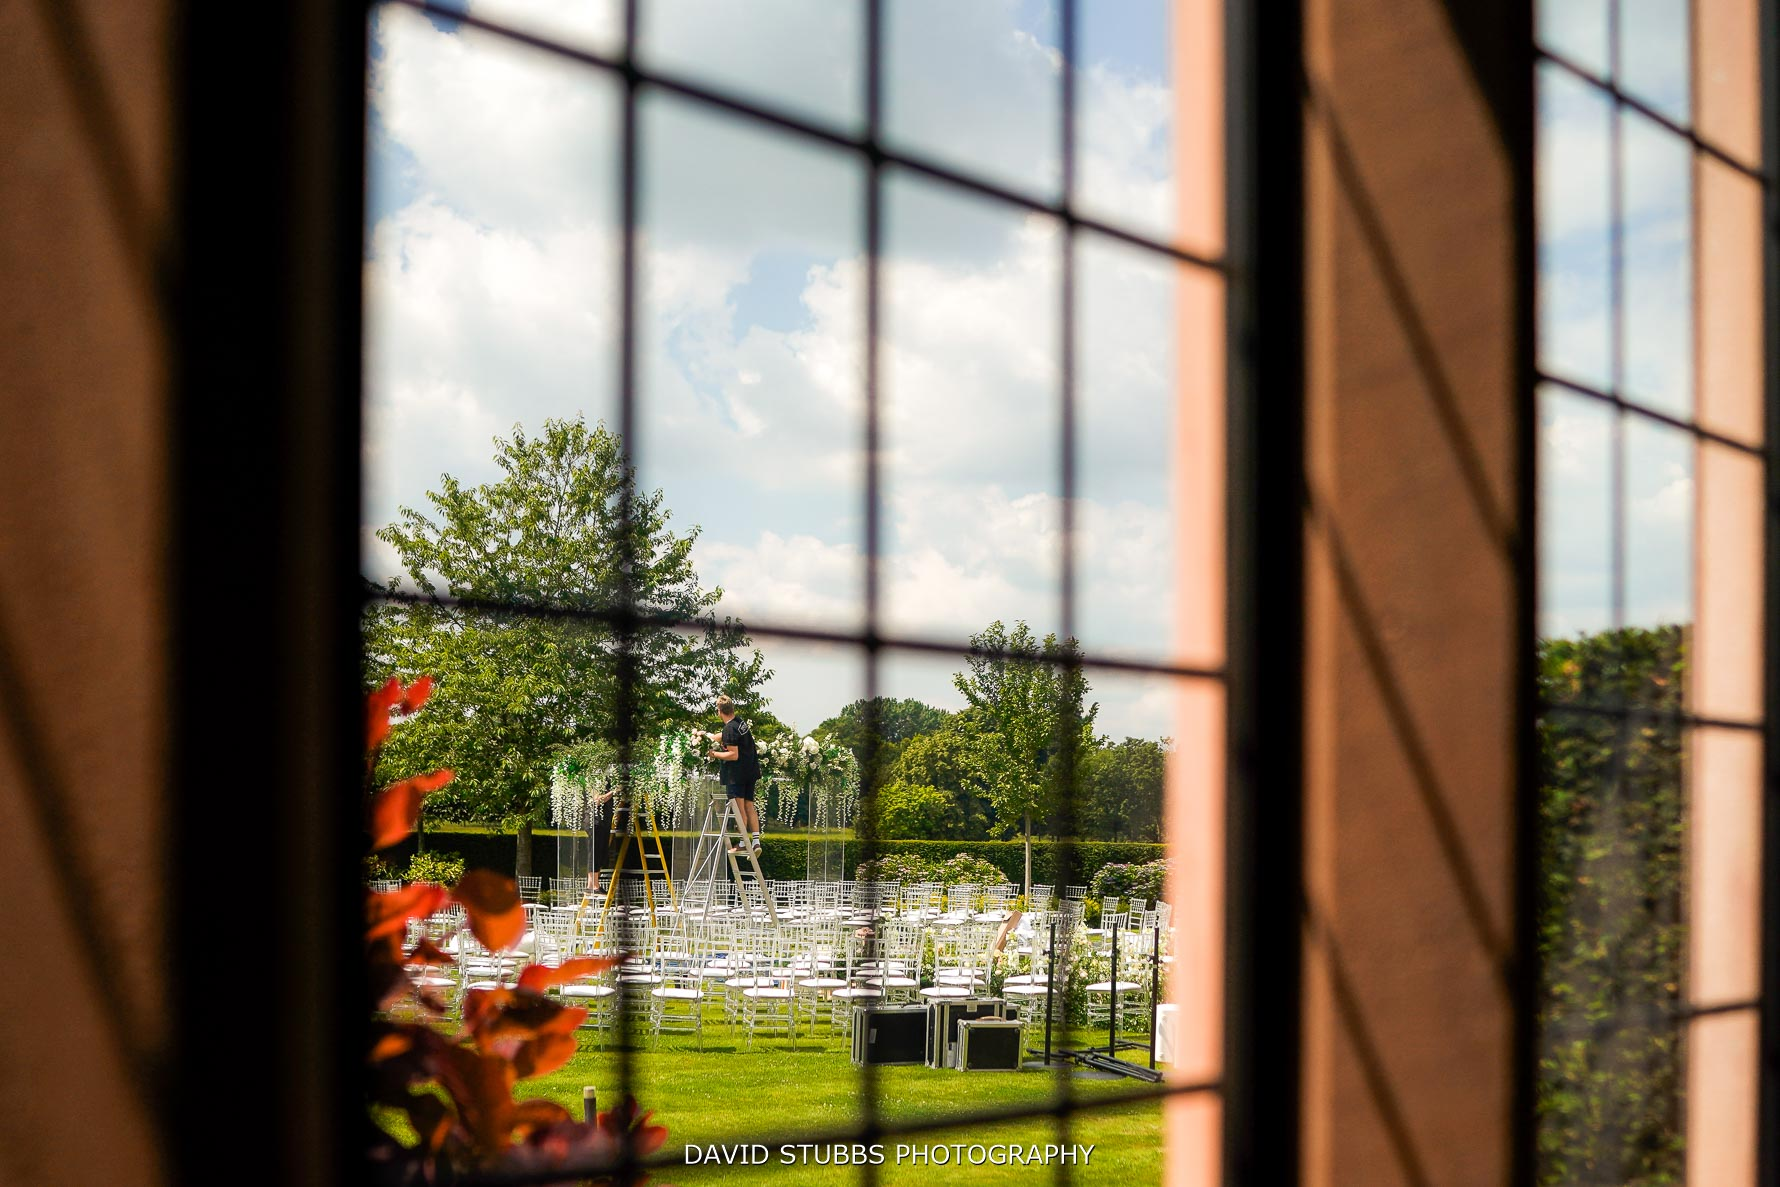 Merrydale Manor ceremony being set-up